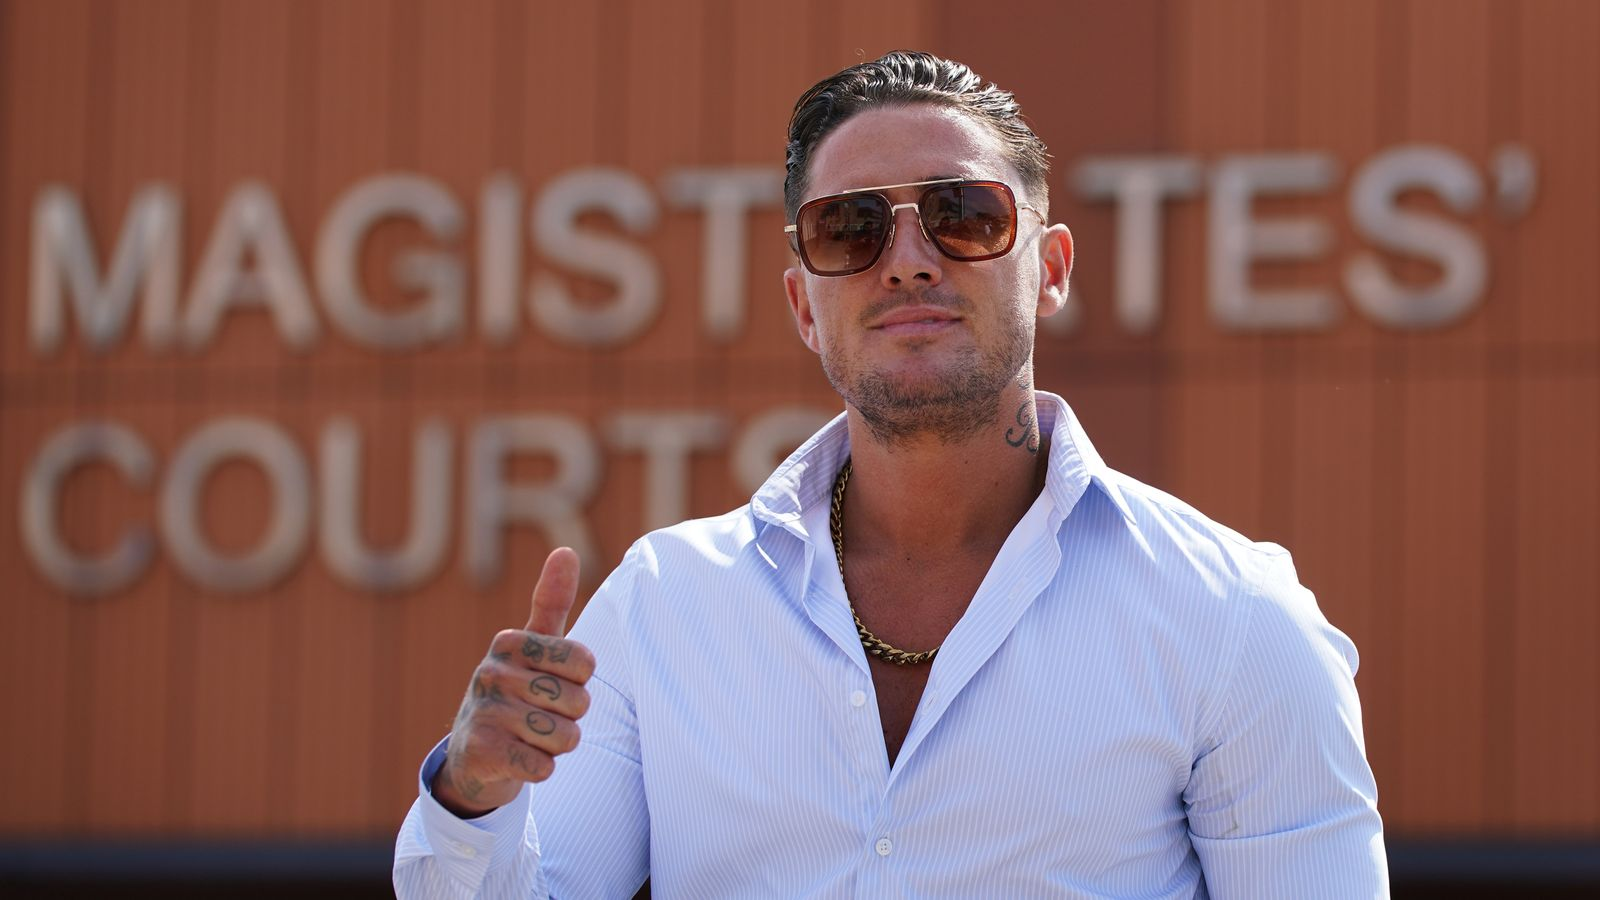 Reality star Stephen Bear appears in court accused of sharing sexual images